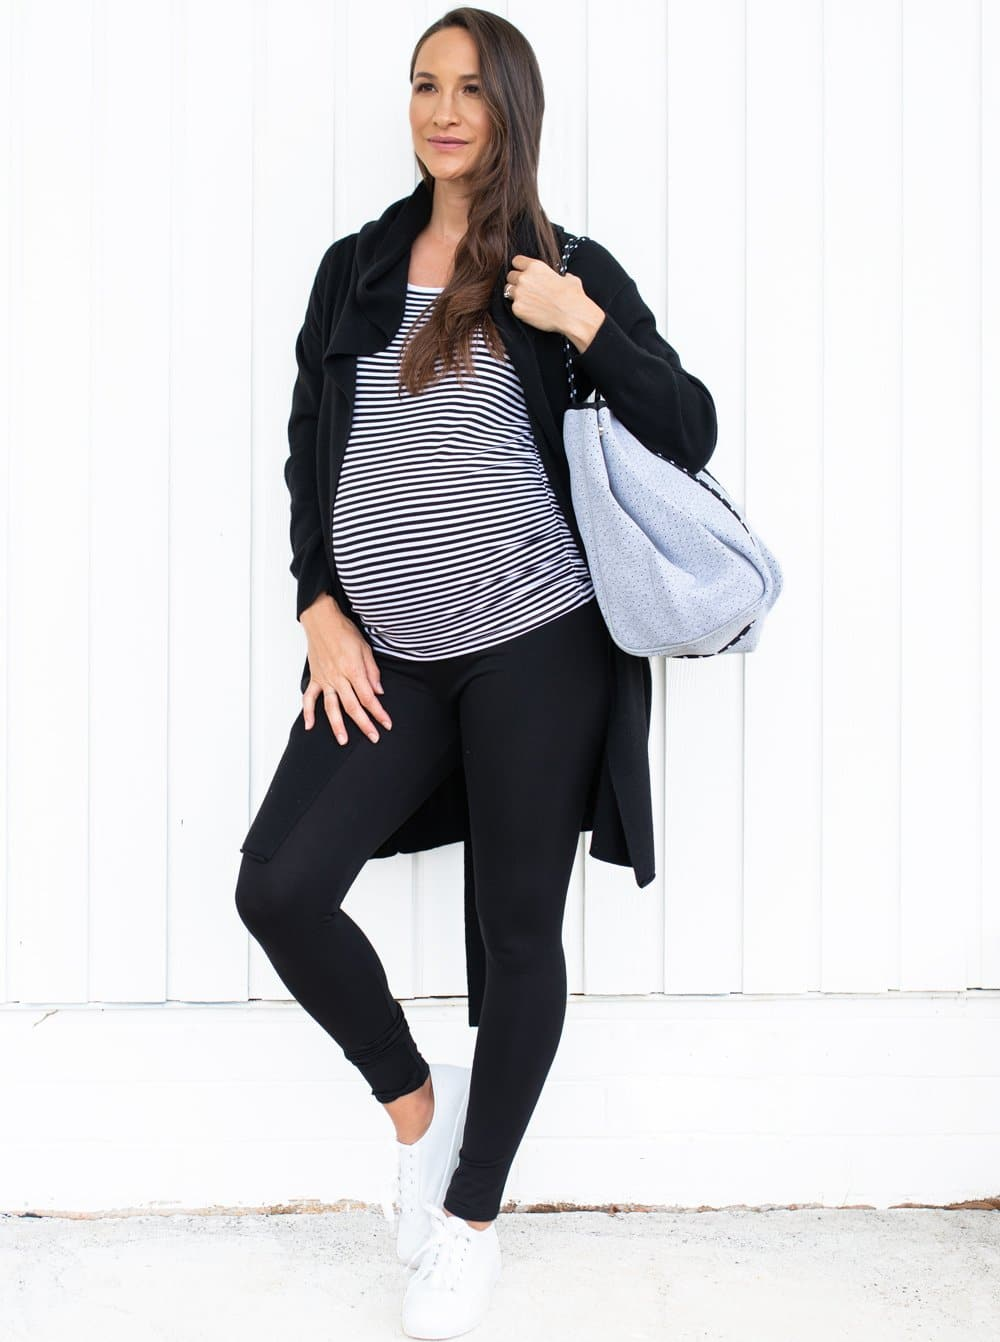 Knitted Merino Wool Hoodie Cardigan & Maternity Leggings Outfit